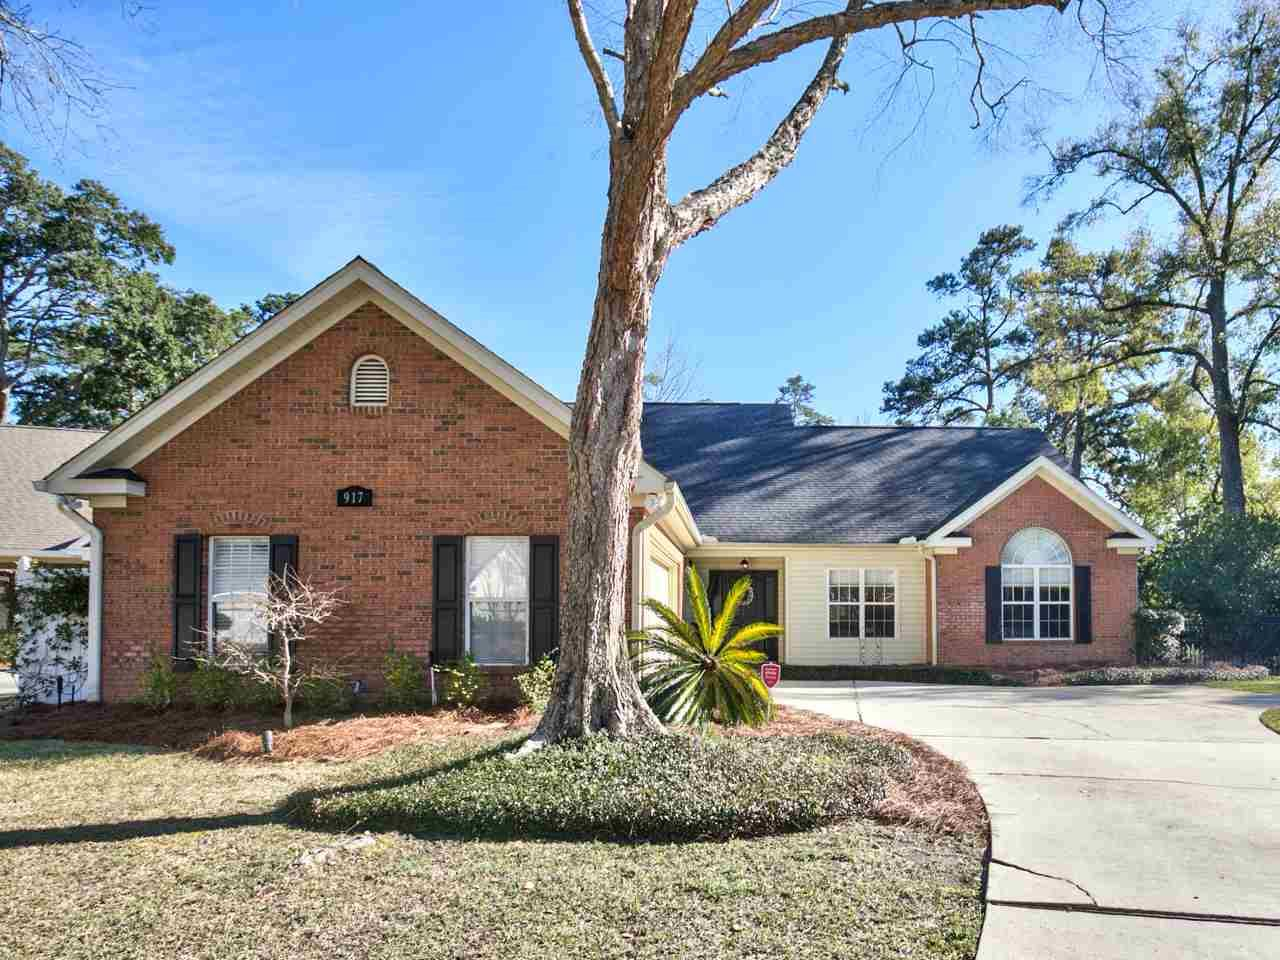 Photo of 917 Hillcrest Court, TALLAHASSEE, FL 32308 (MLS # 315388)